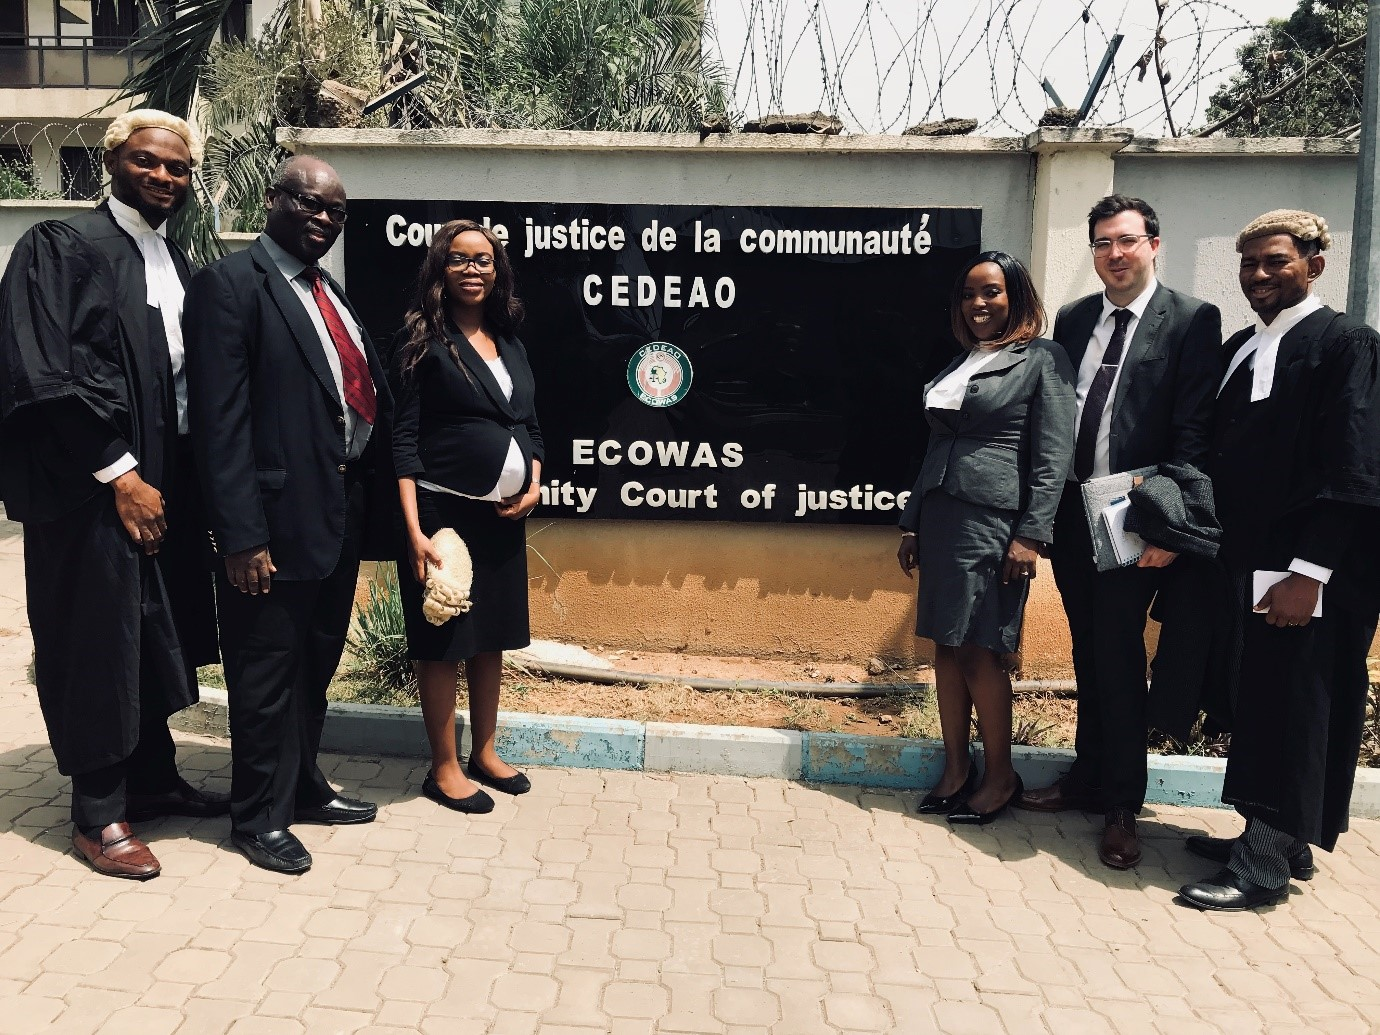 UPDATE: ECOWAS Court delivers landmark decision in one of our strategic cases challenging the laws used to silence and intimidate journalists in the Gambia